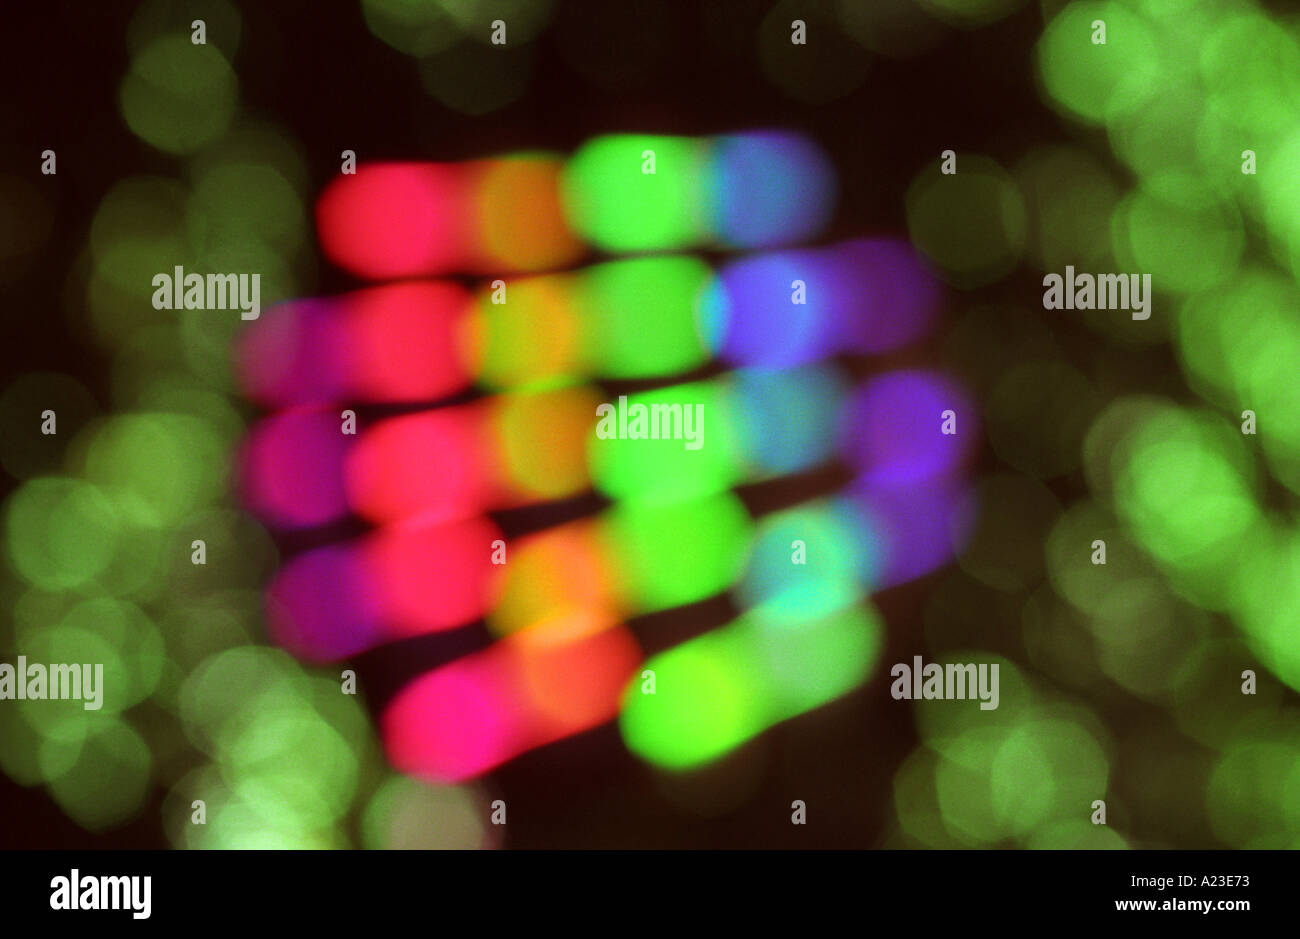 Light abstract showing colours of the spectrum - Stock Image